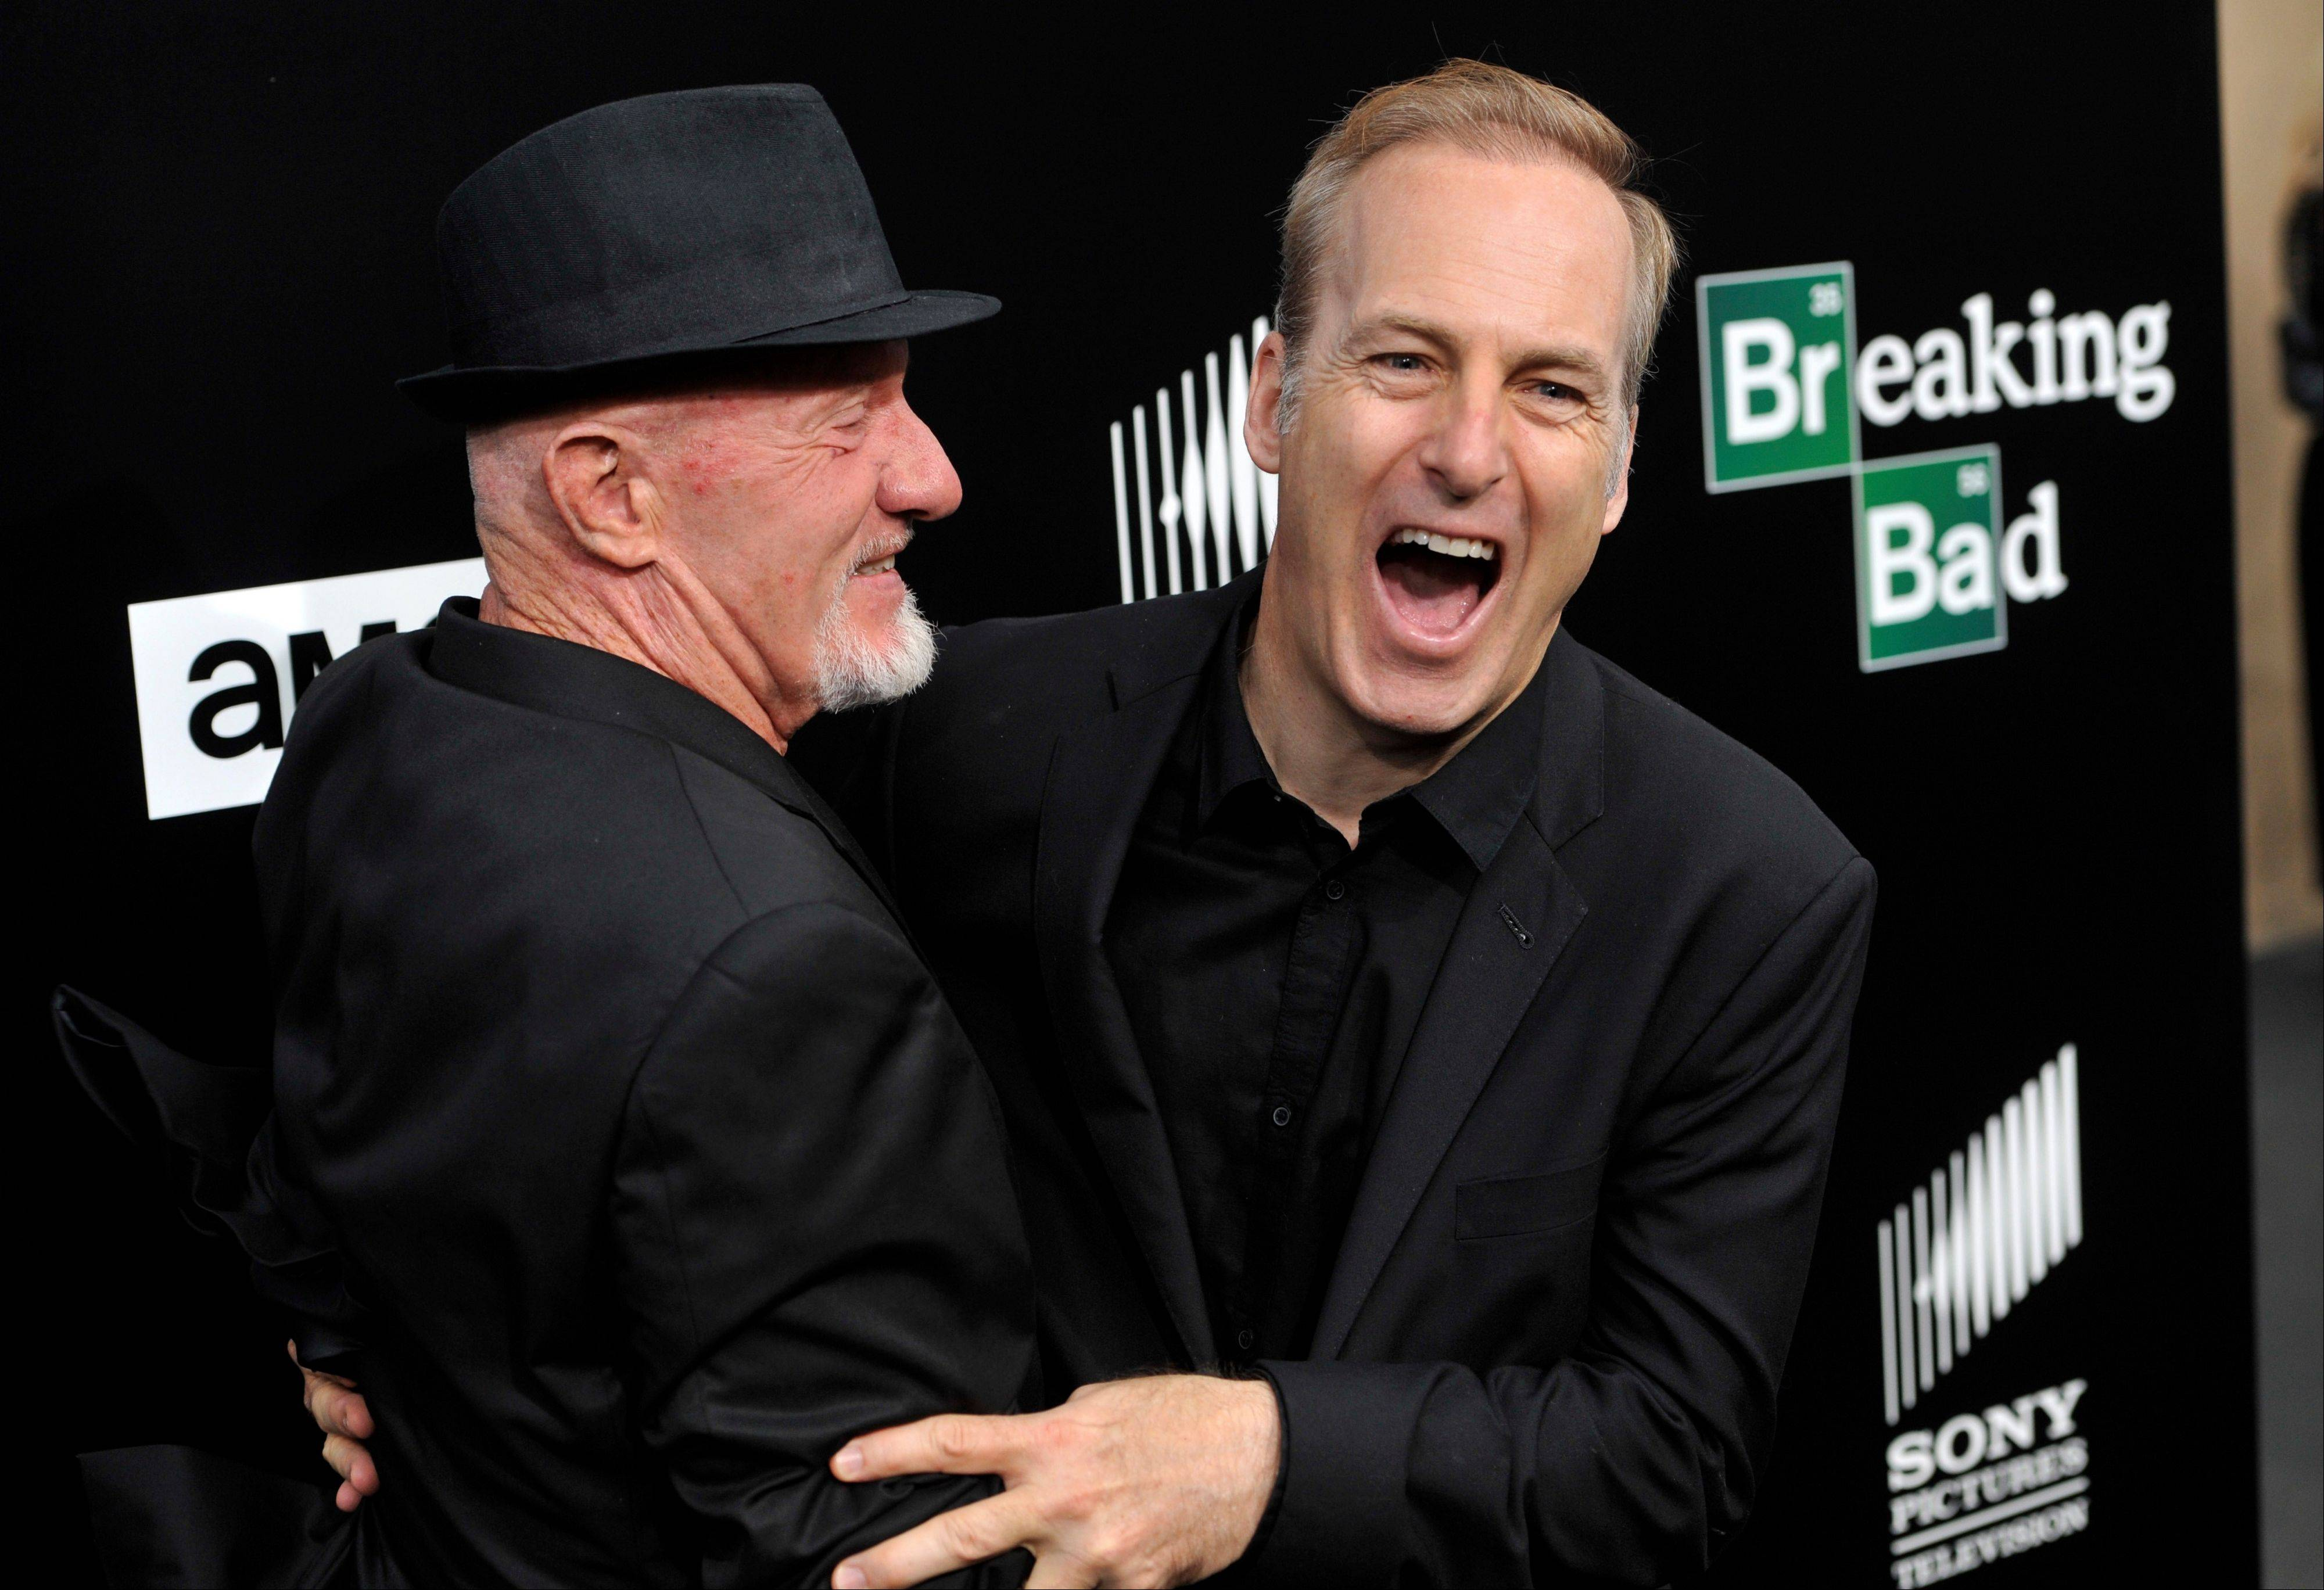 "This July 24, 2013, file photo shows ""Breaking Bad"" cast members Jonathan Banks, left, and Bob Odenkirk on the red carpet at a premiere screening to celebrate the final episodes in Los Angeles. AMC and Sony Pictures Television on Wednesday confirmed that Odenkirk, who plays Saul Goodman, will star in a one-hour prequel tentatively titled ""Better Call Saul."" Breaking Bad"" concludes its much-acclaimed five-season run on Sept. 29."